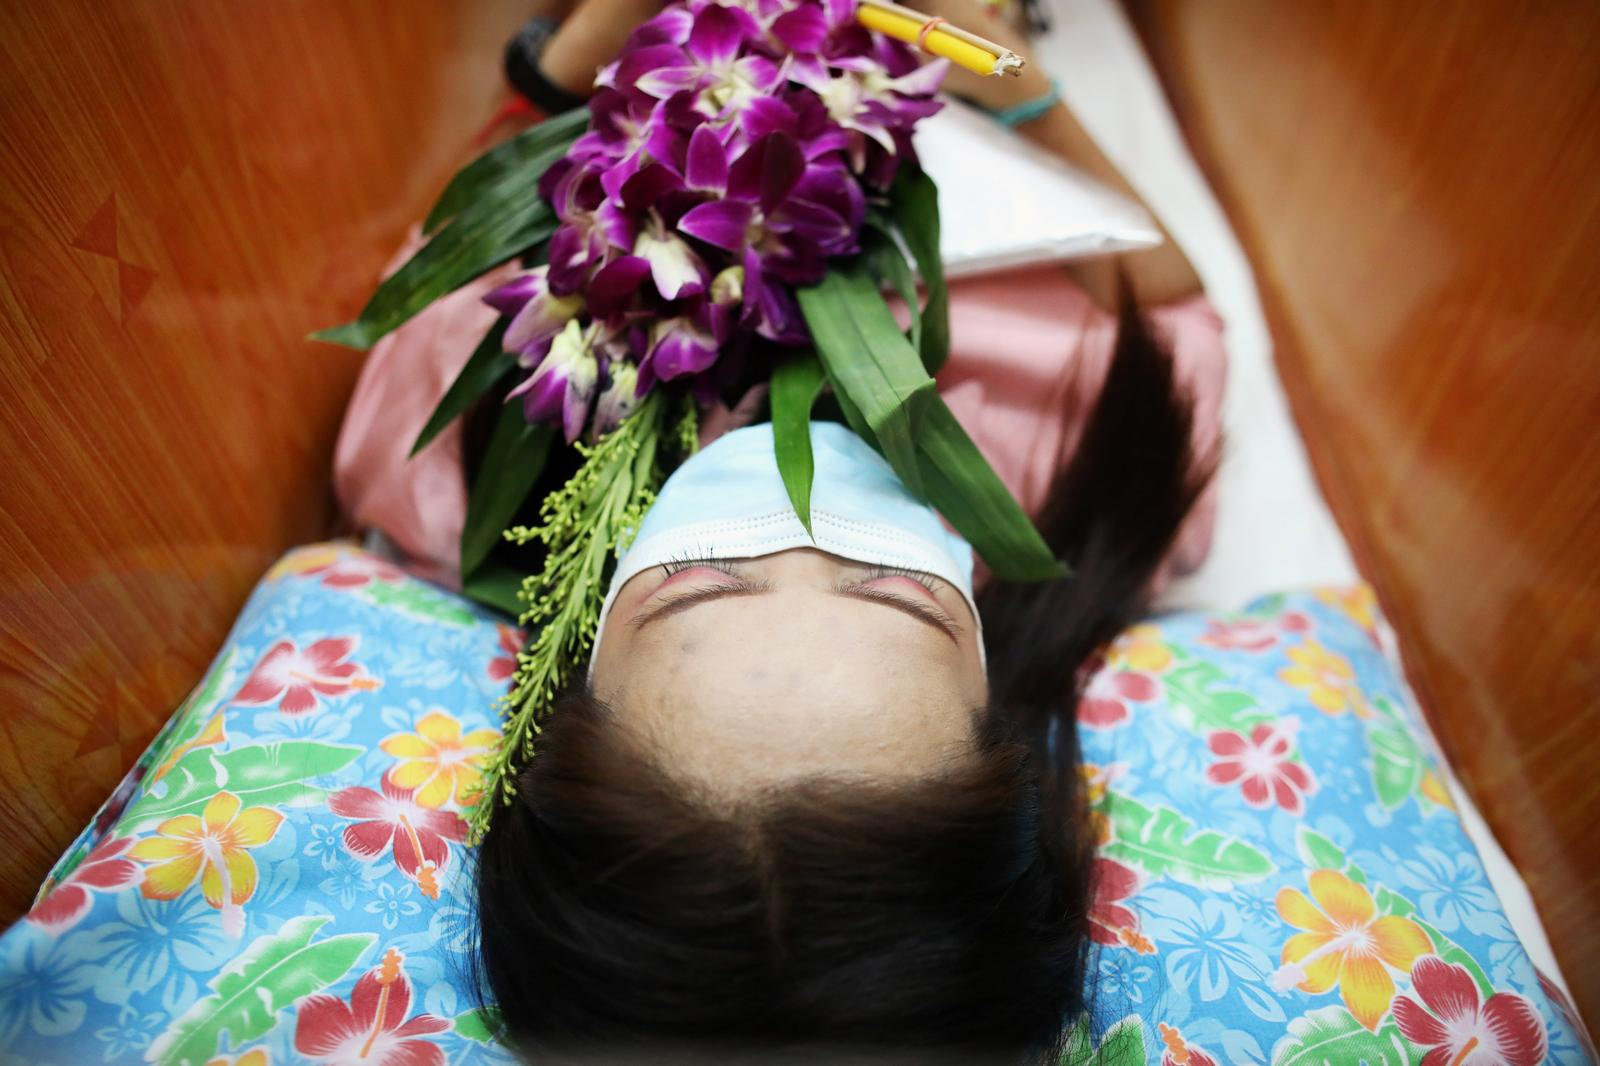 A devotee lies down and prays inside a coffin to trick death and improve luck at a temple in Bangkok, Thailand January 27, 2021. Photo: Reuters